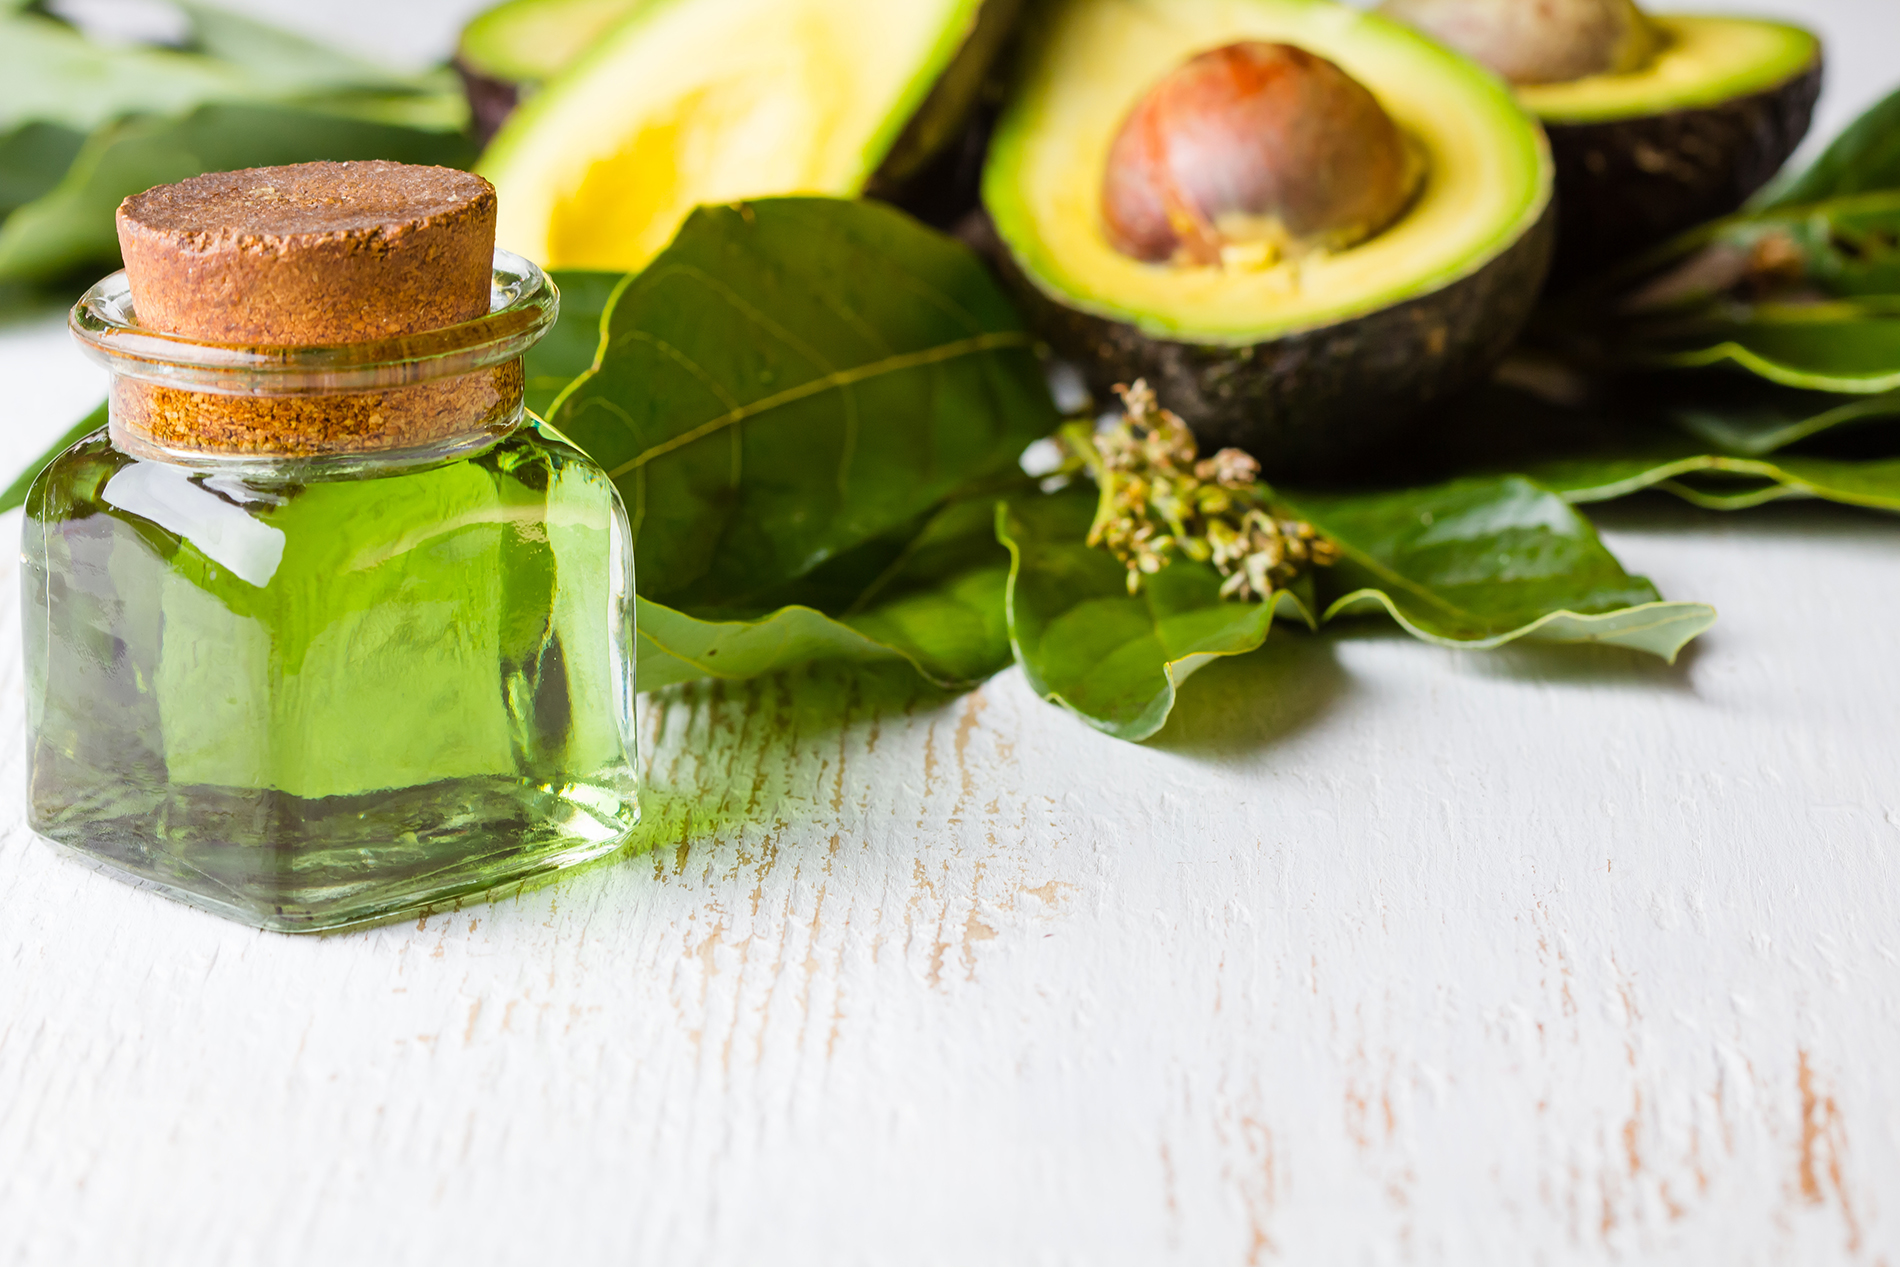 Glass bottle with sliced avocado 53453